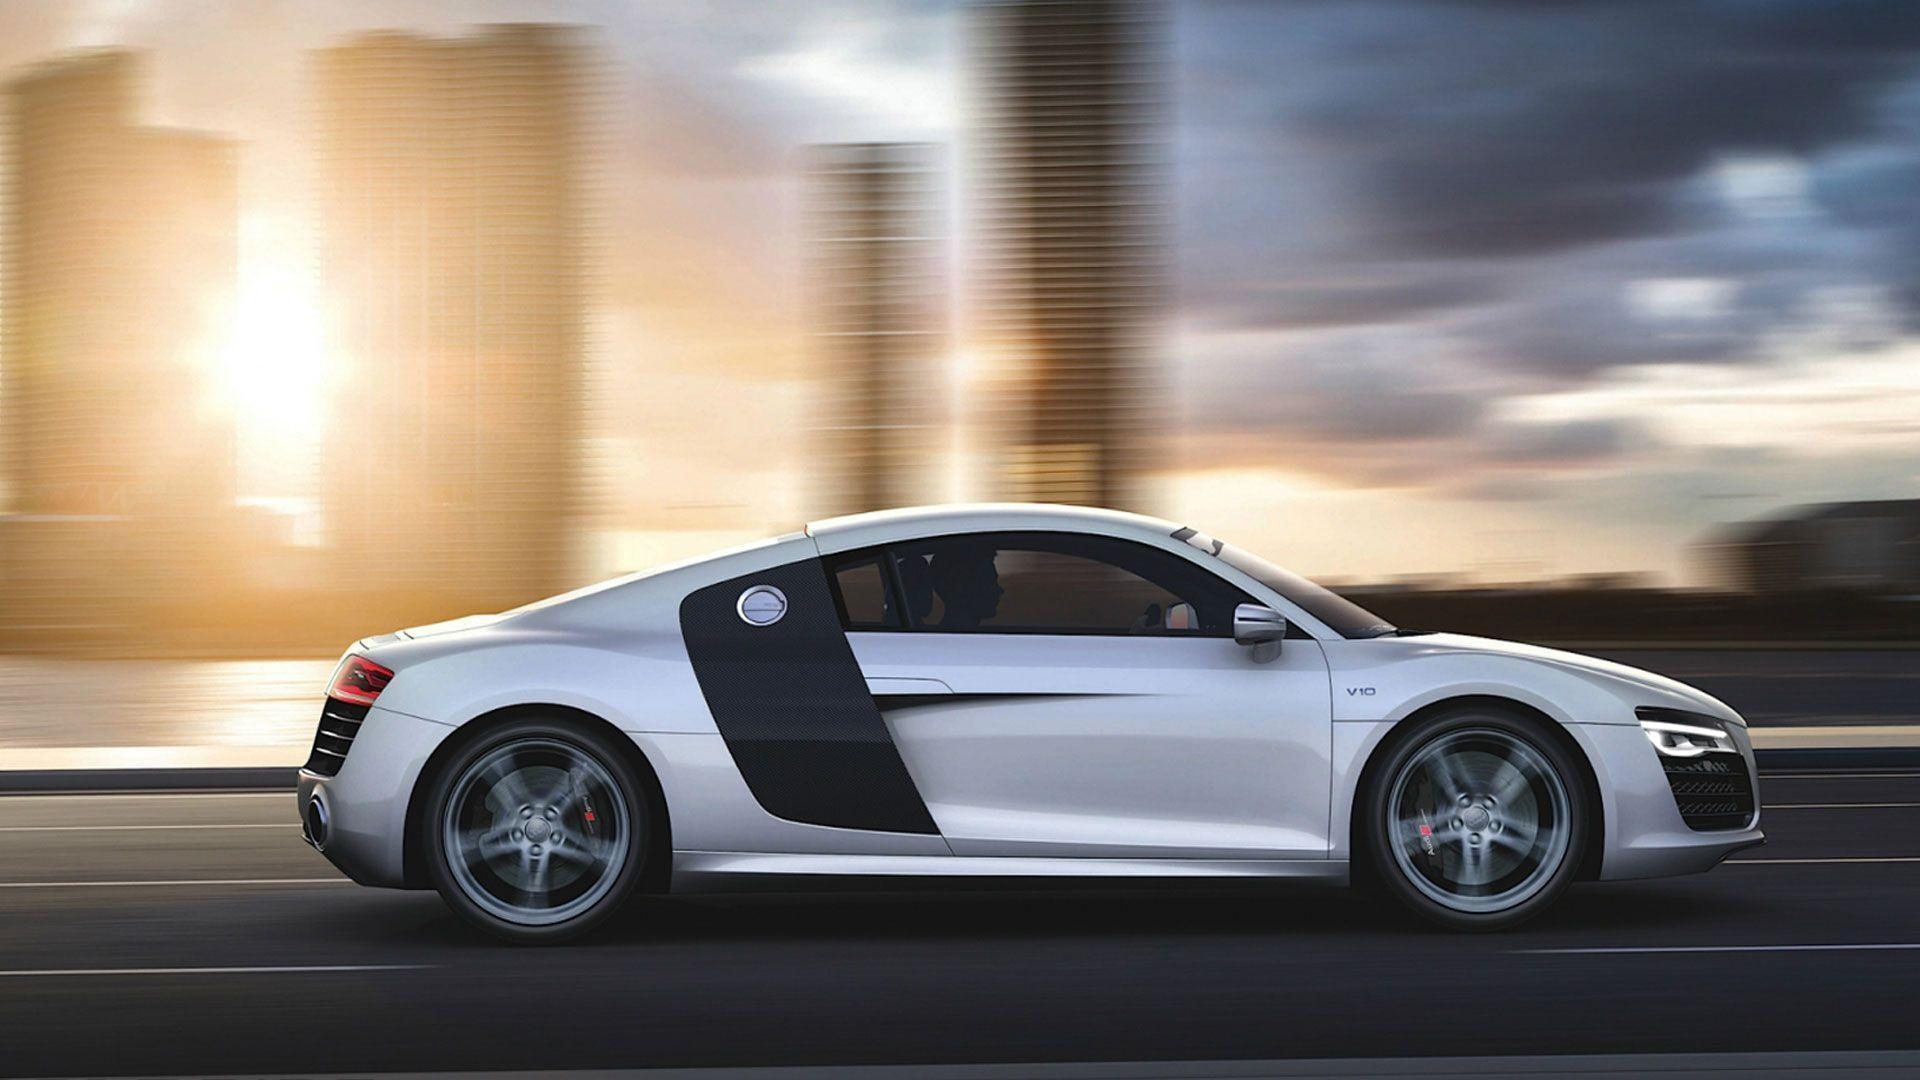 Audi R8 V10 Wallpapers 1920x1080